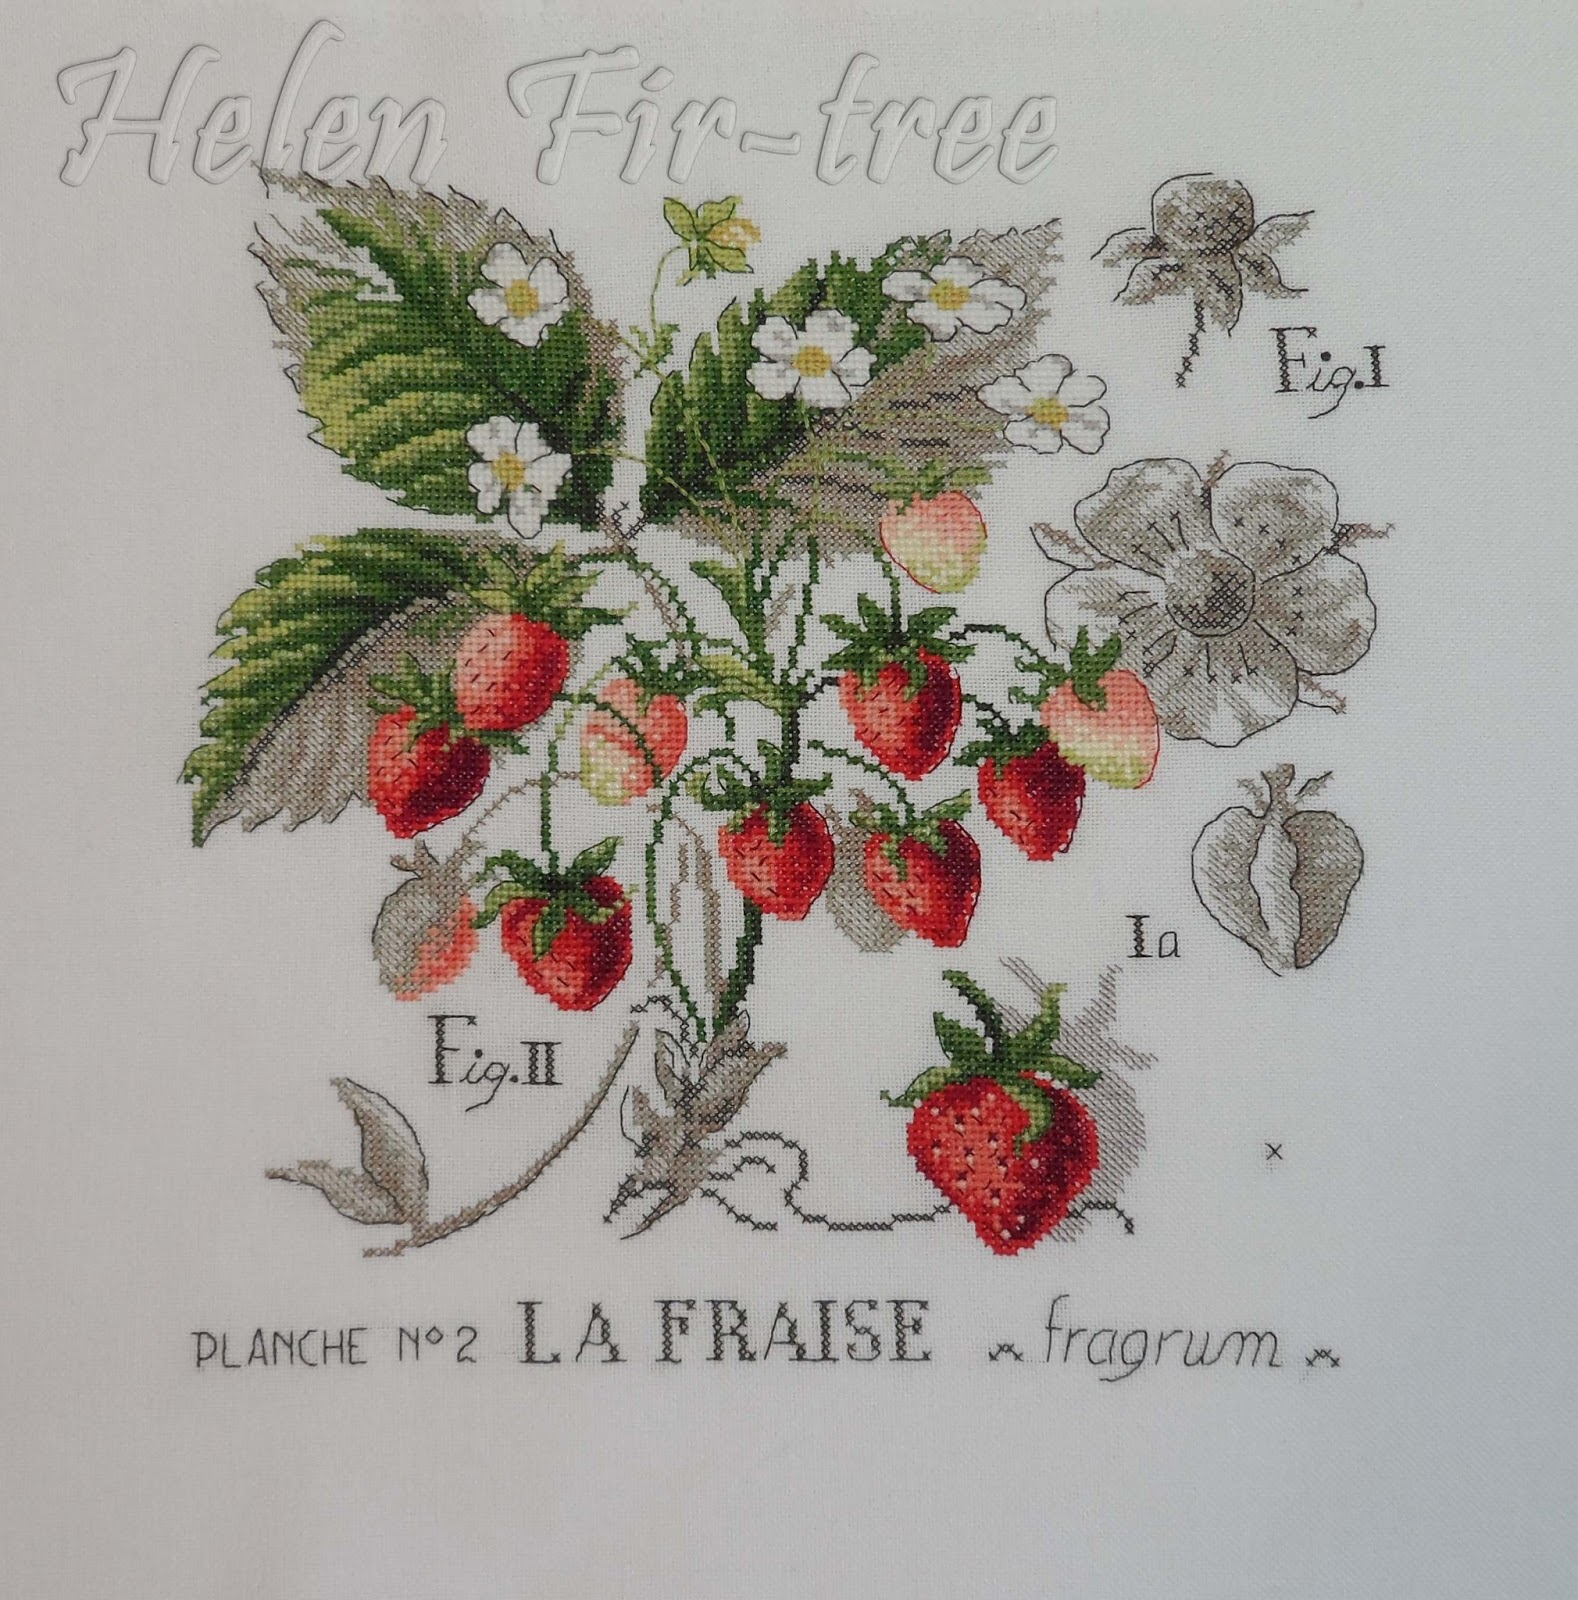 Helen Fir-tree вышивка крестом земляника counted cross stitch strawberry